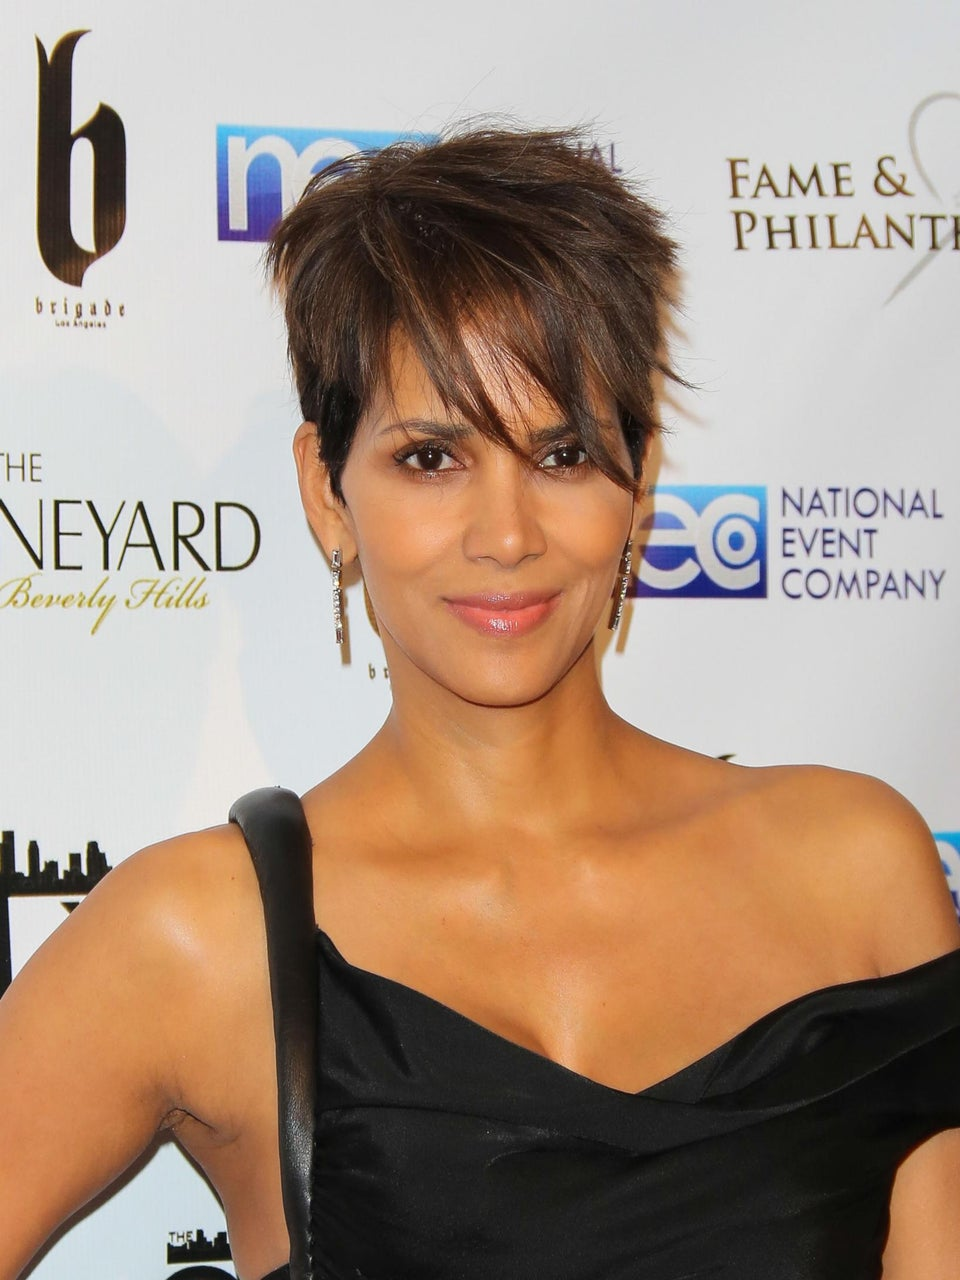 Halle Berry on Post-Baby Body: 'I'm Healthy, I'm Happy. That's All That Matters'